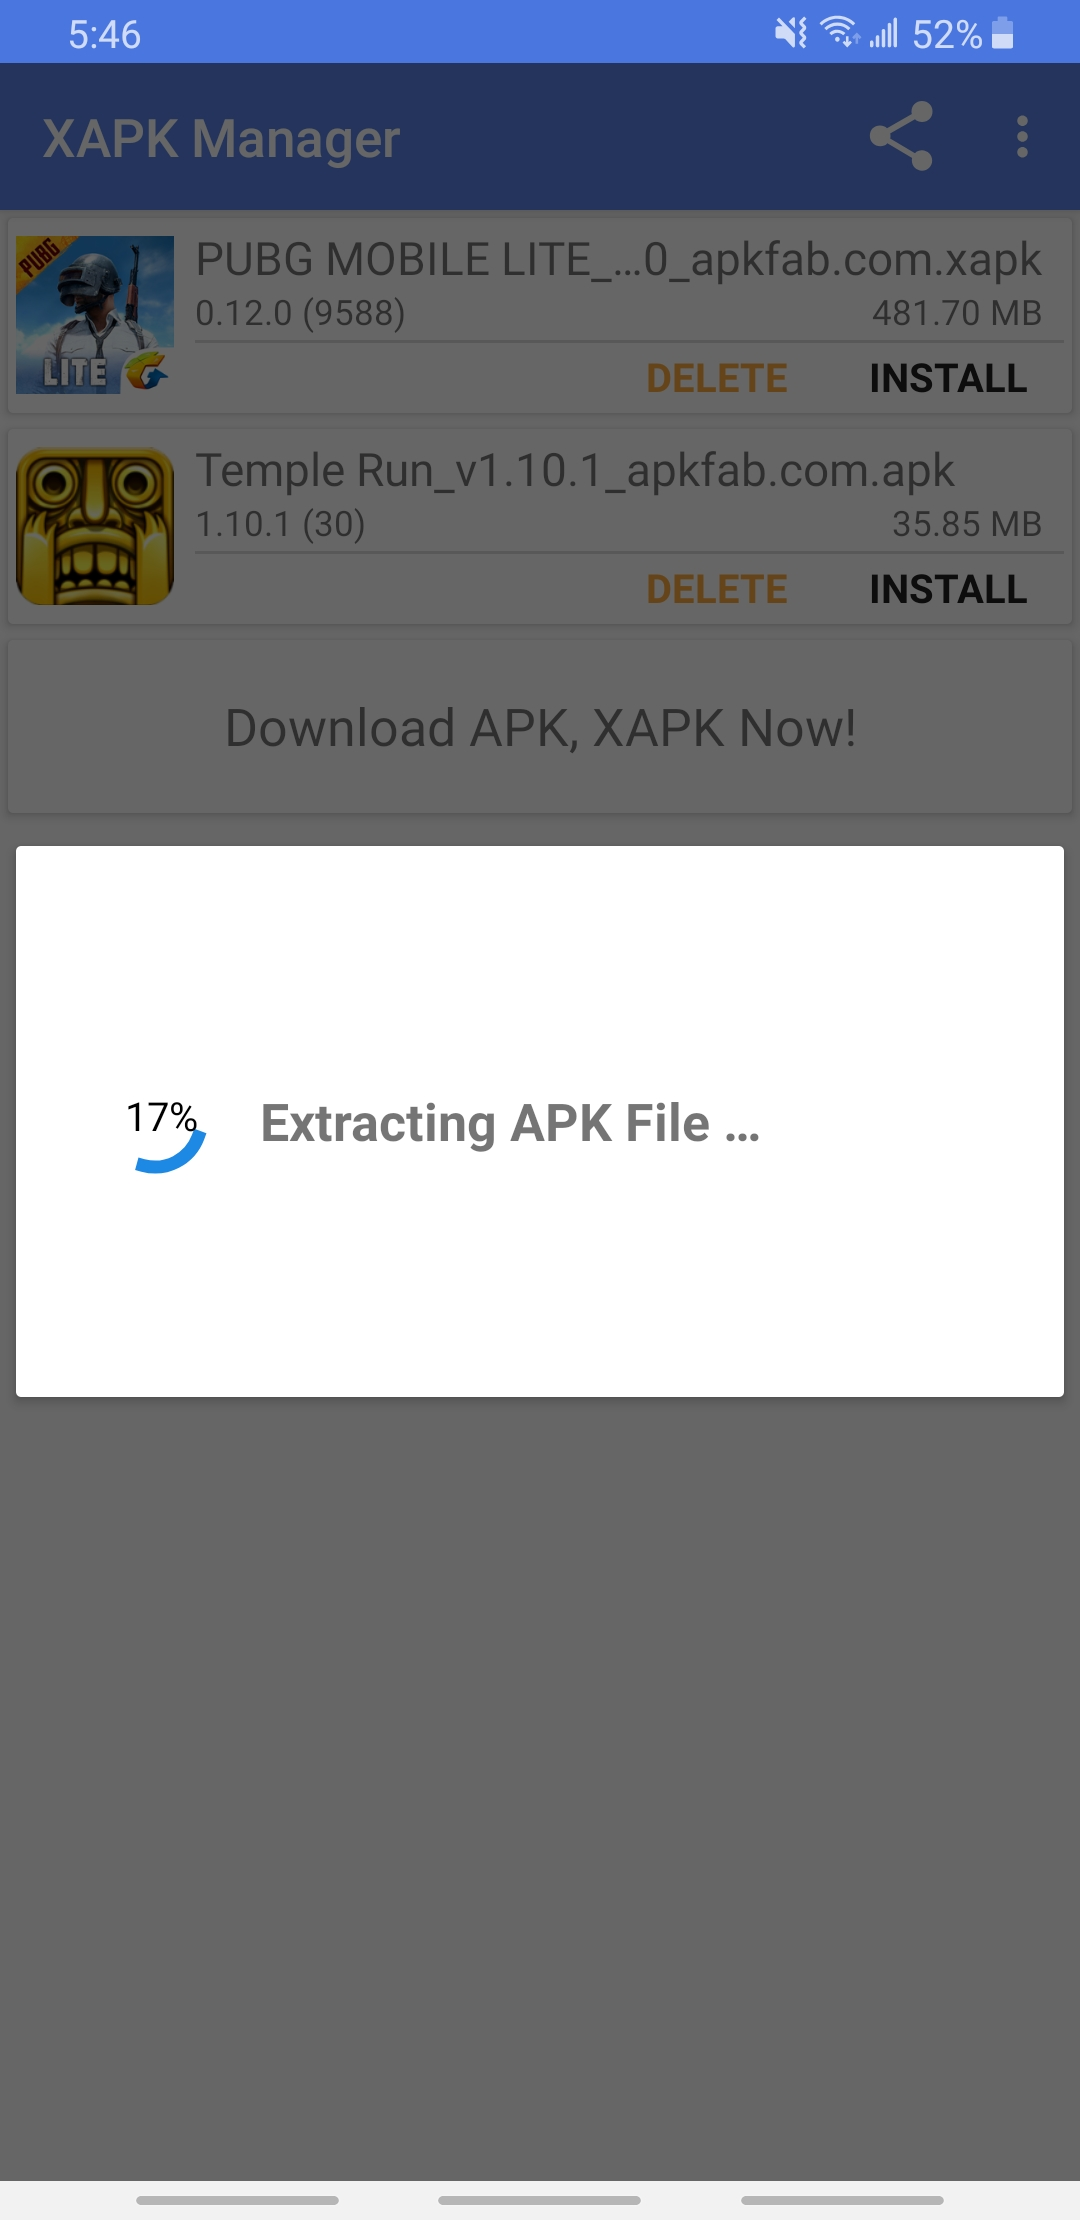 XAPK Manager APK 2 2 1 Download for Android – Download XAPK